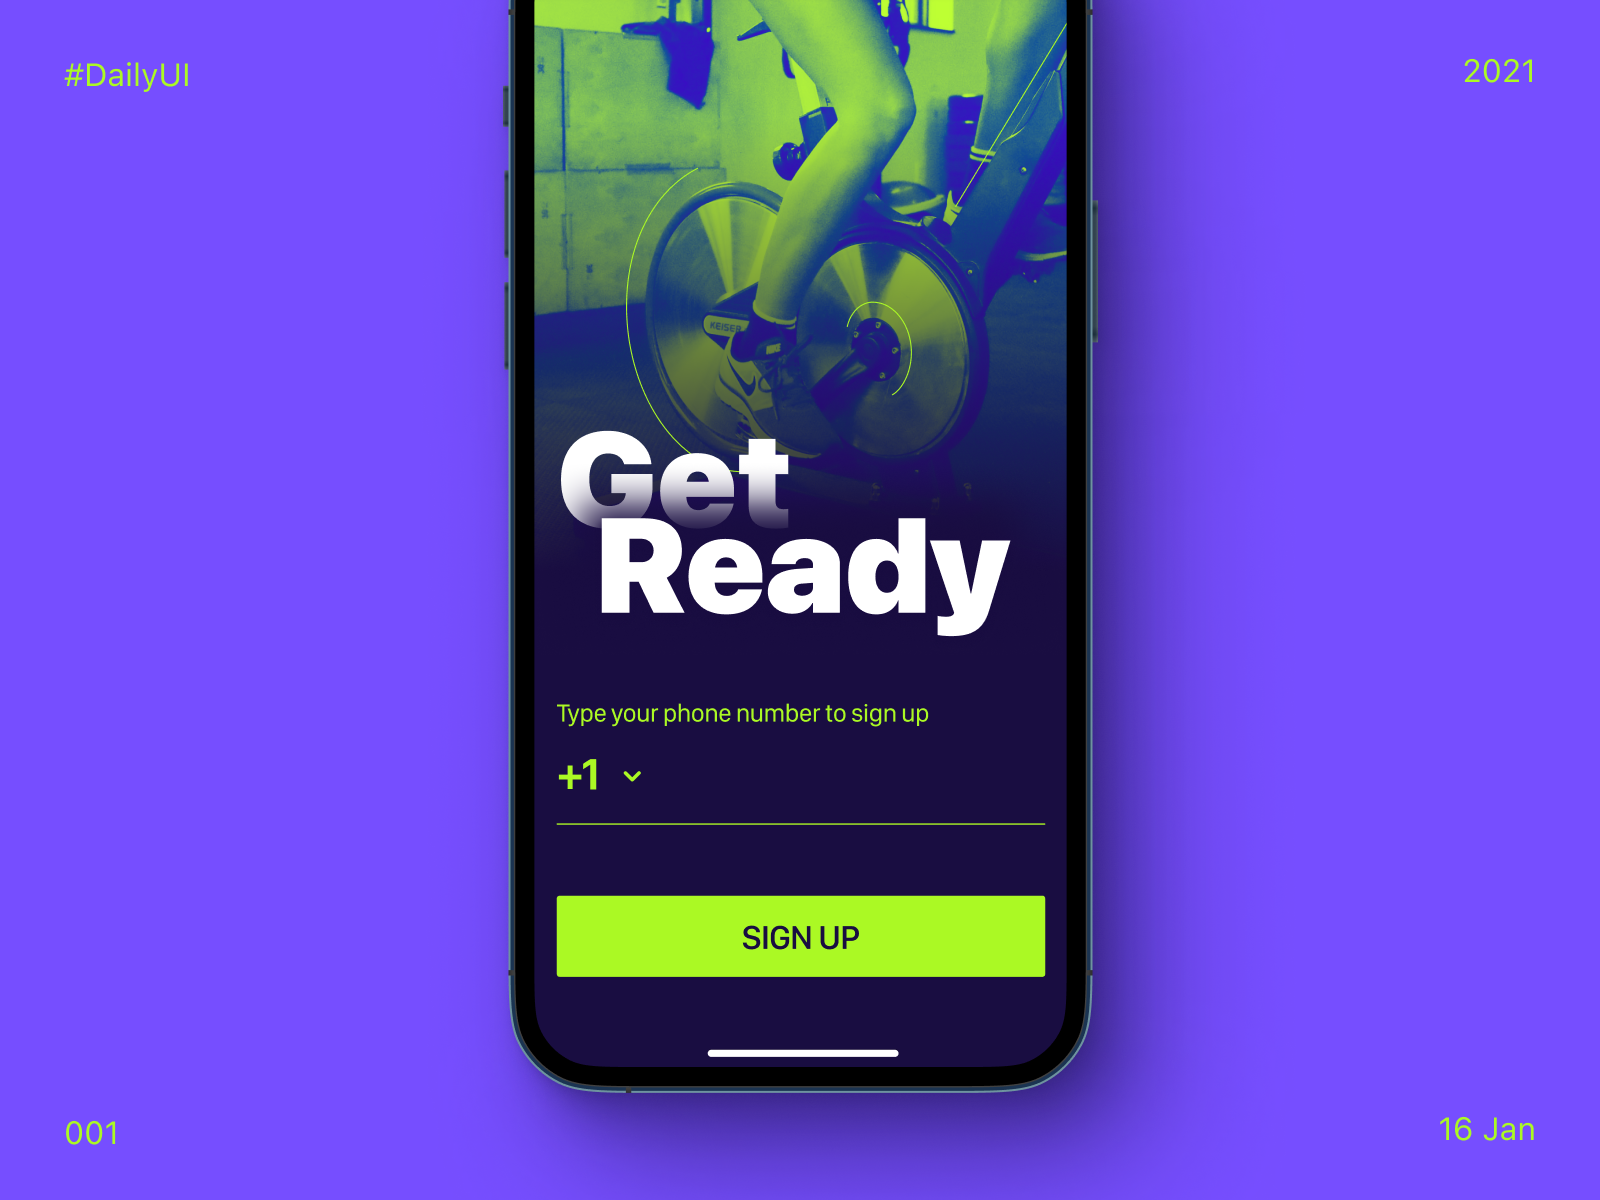 Sign up UI screen for online spinning class